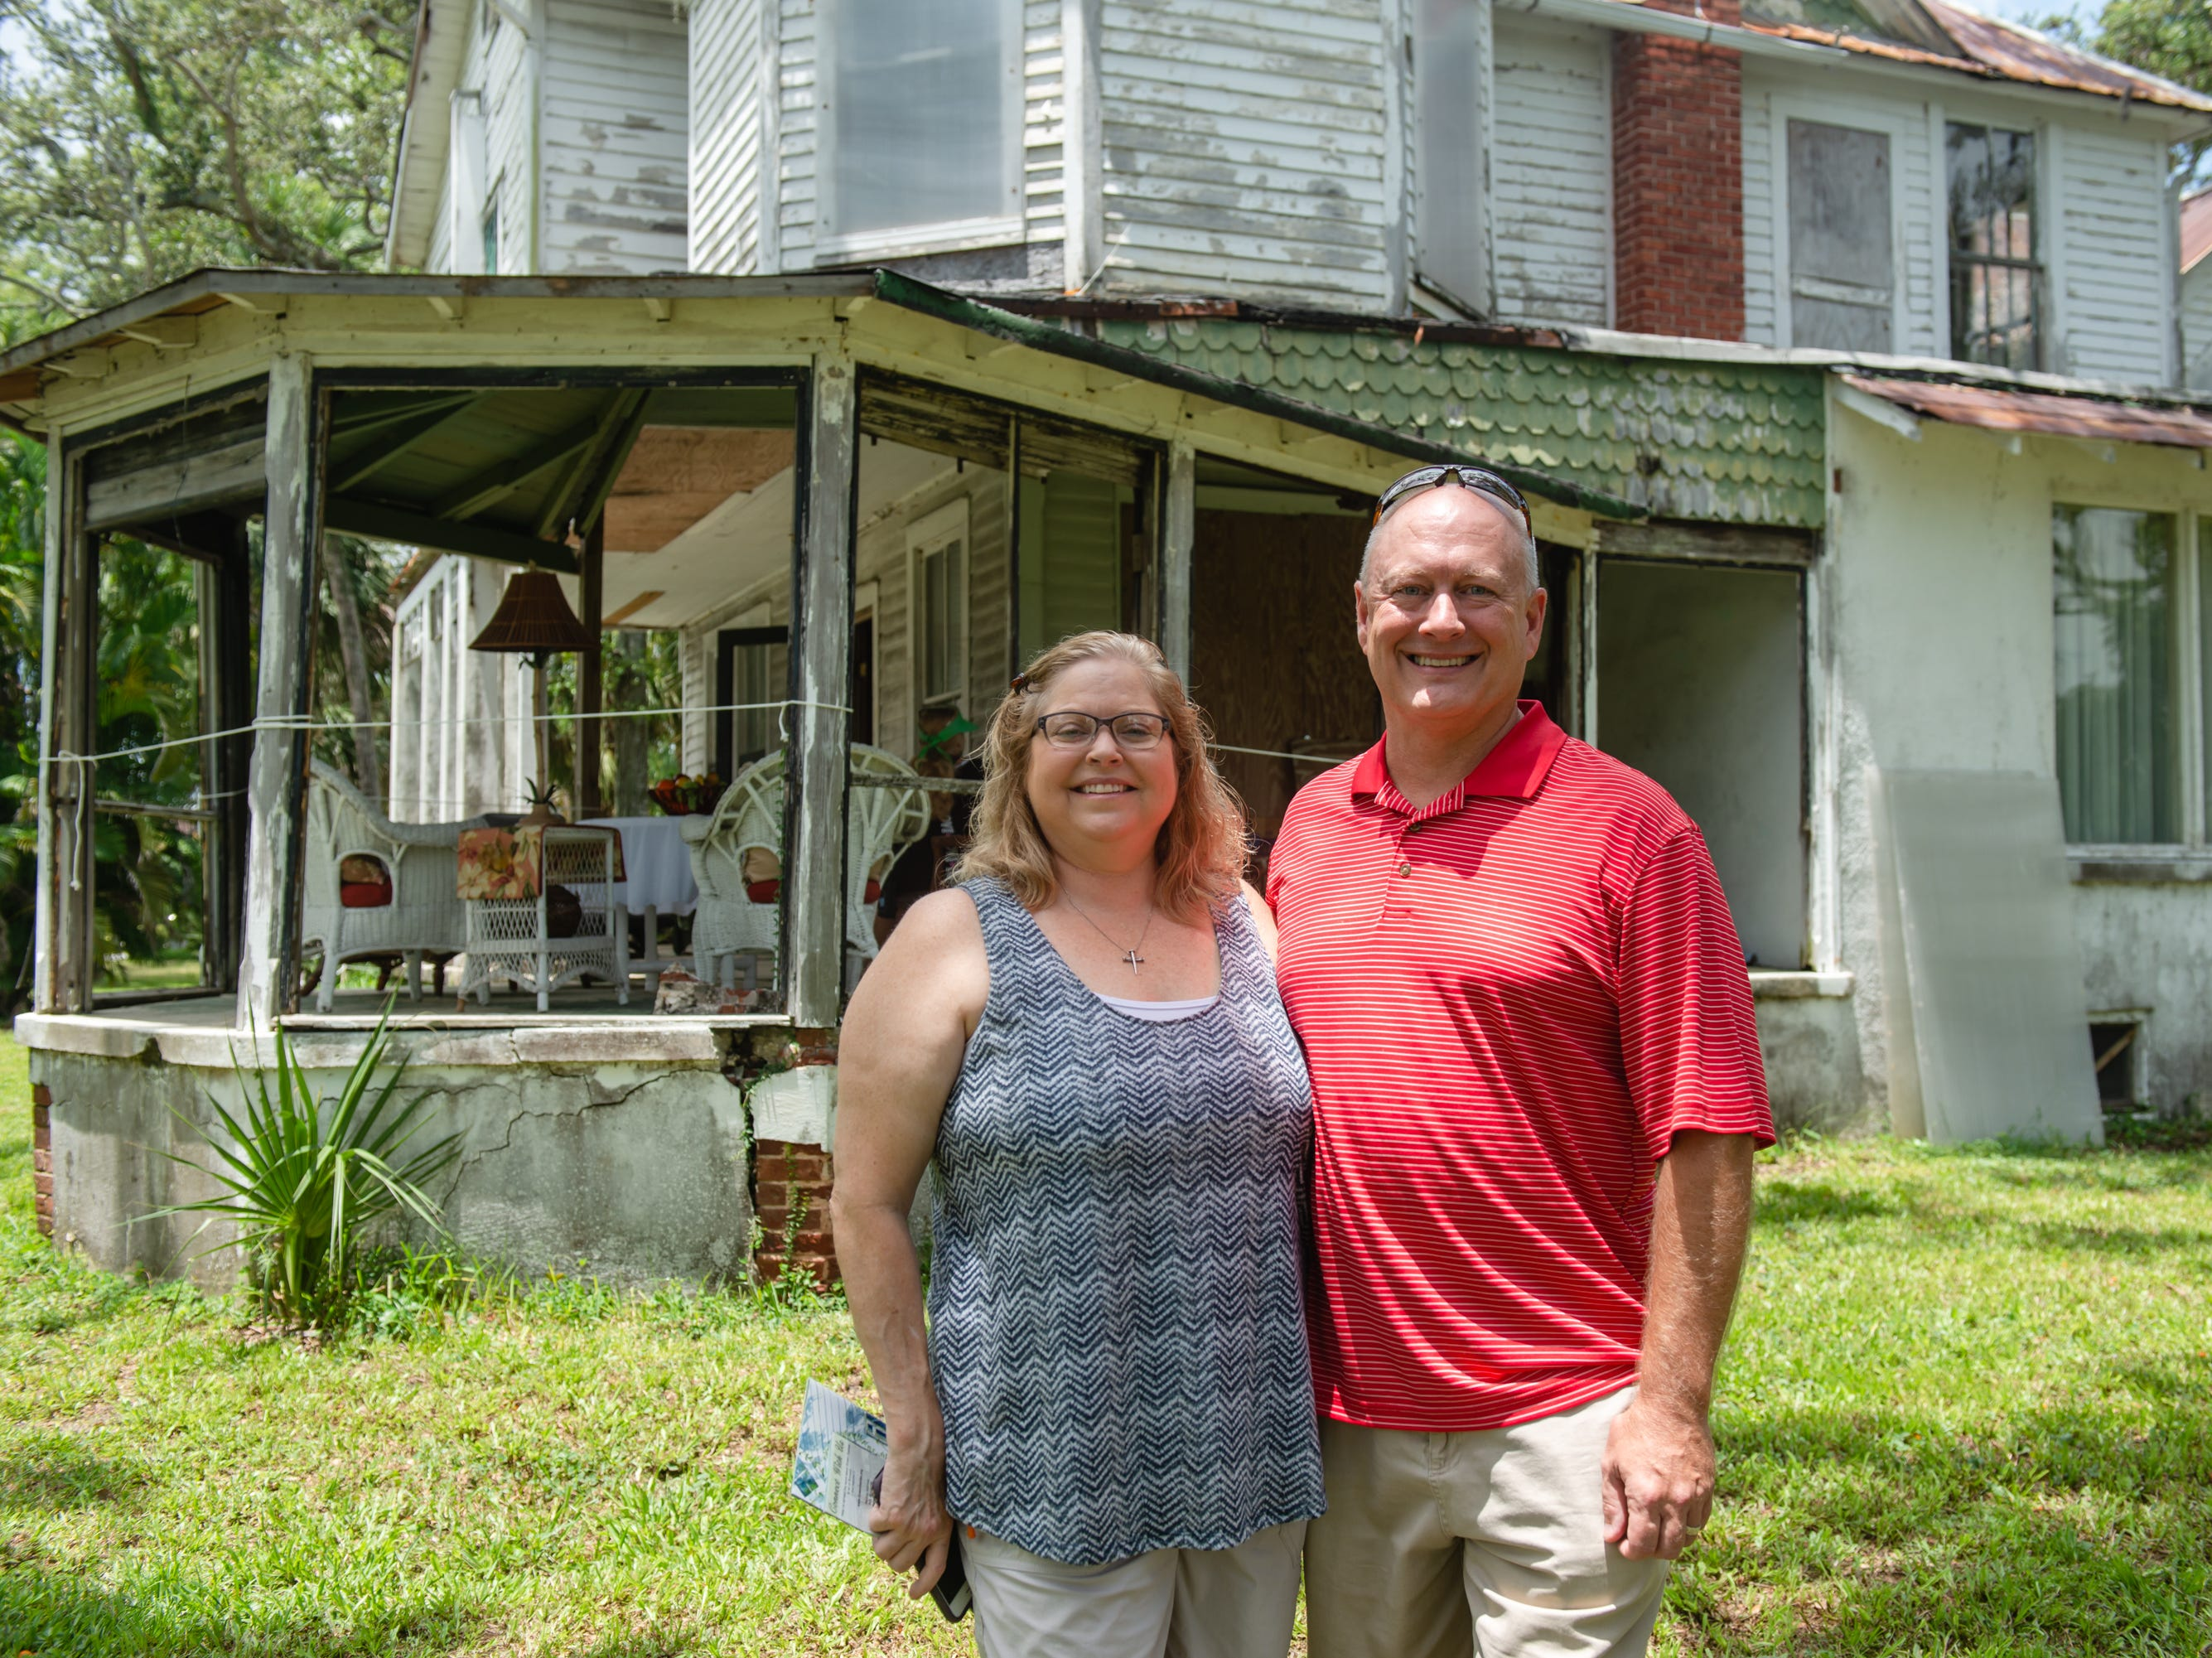 Missy and Curtis Meador at the Christmas in July event, which raised money to restore the Green Gables Victorian house in Melbourne.